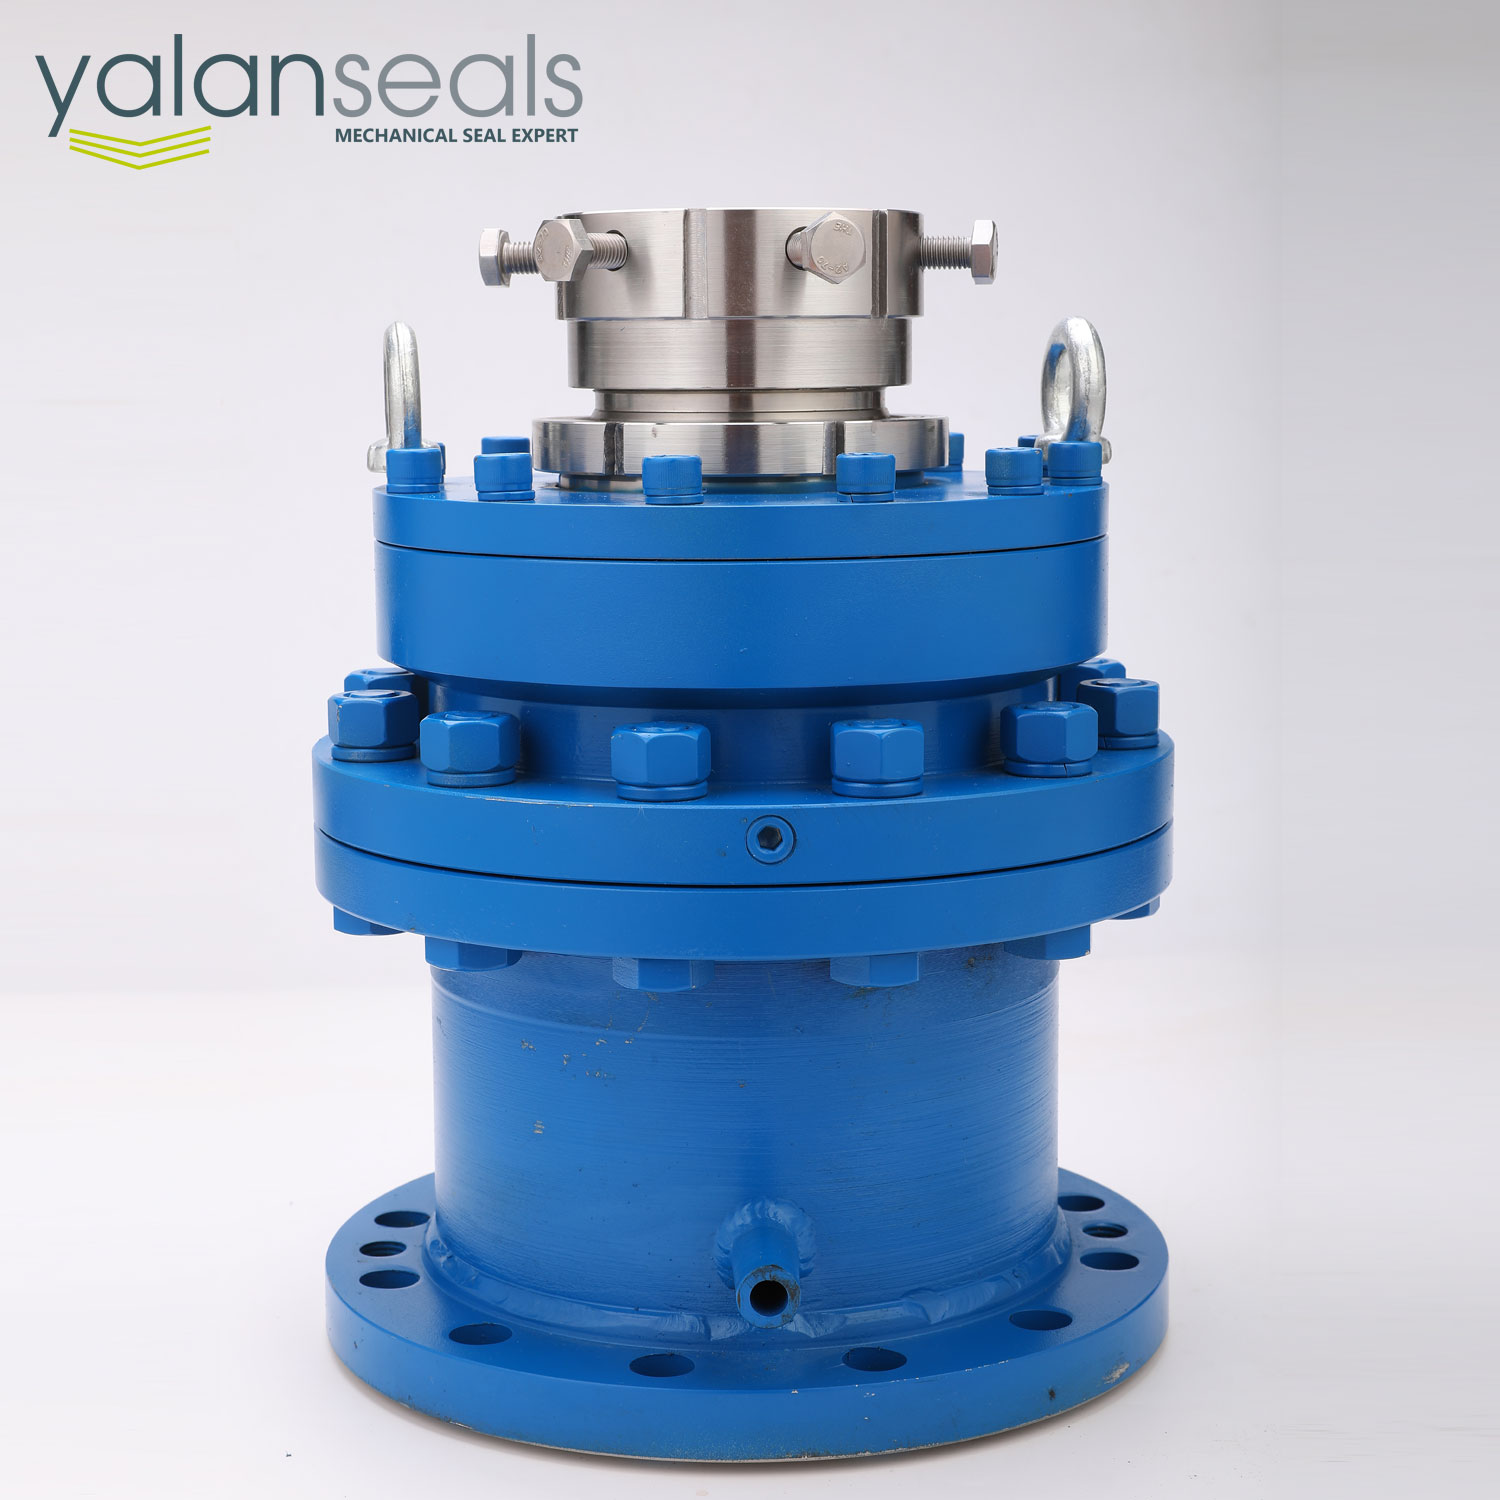 Type 207 Cartridge Mechanical Seal for Mixers